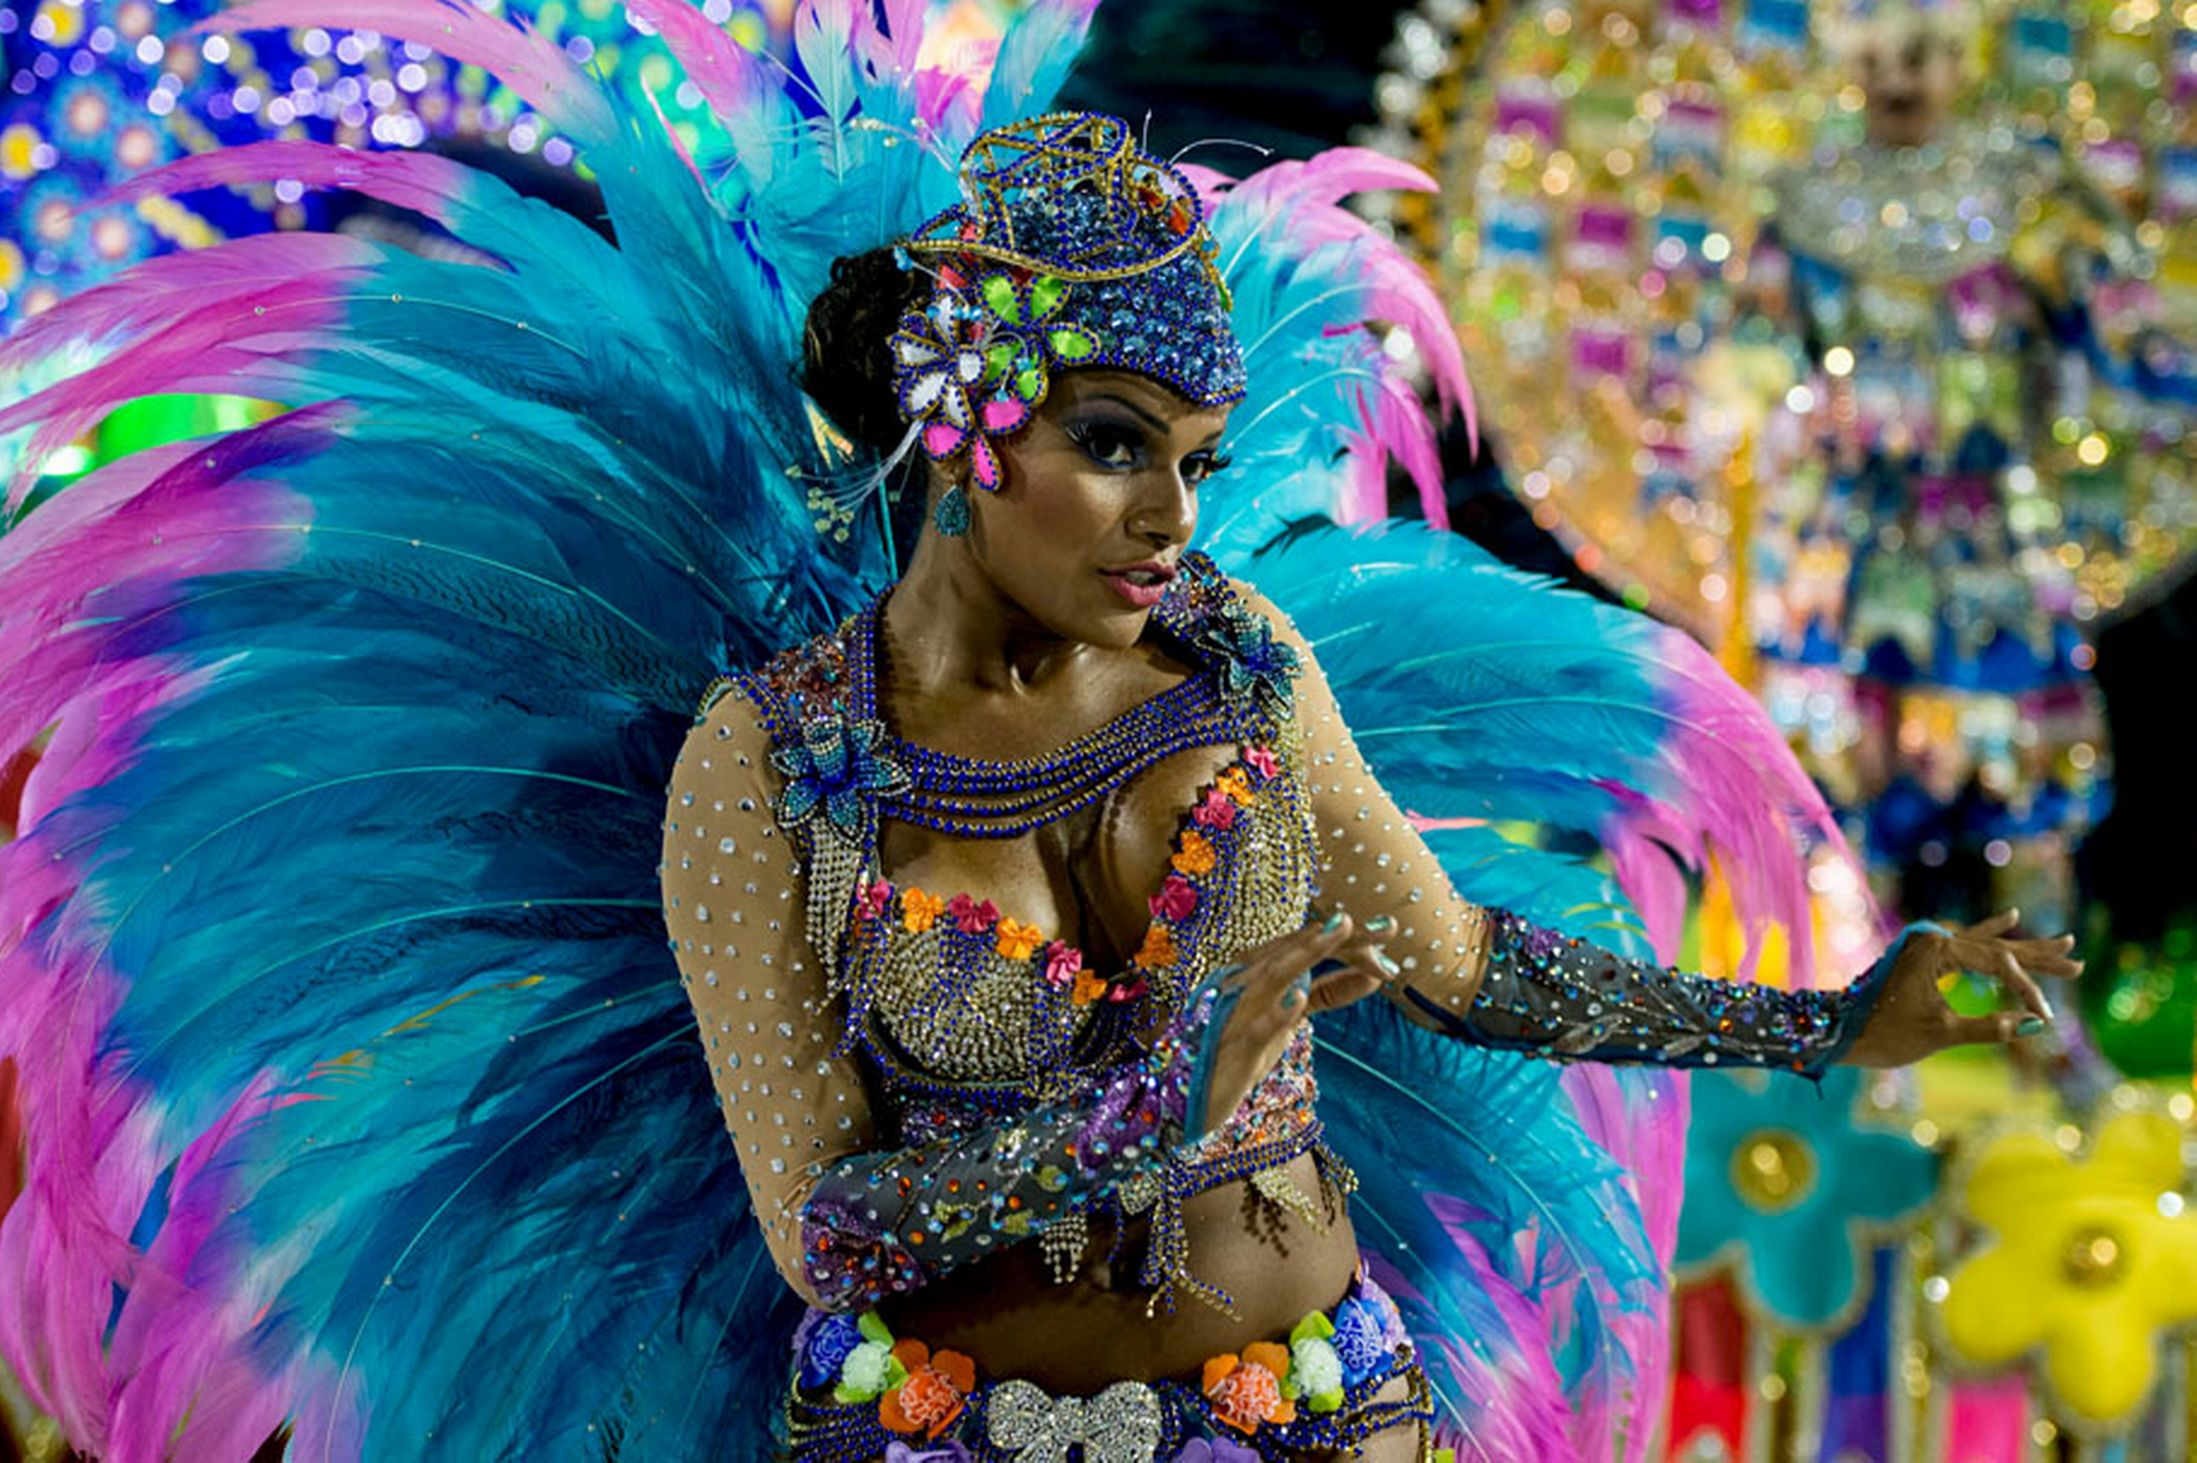 A reveller at the first night of the annual carnival parade in Rio de Janeiro's Sambadrome